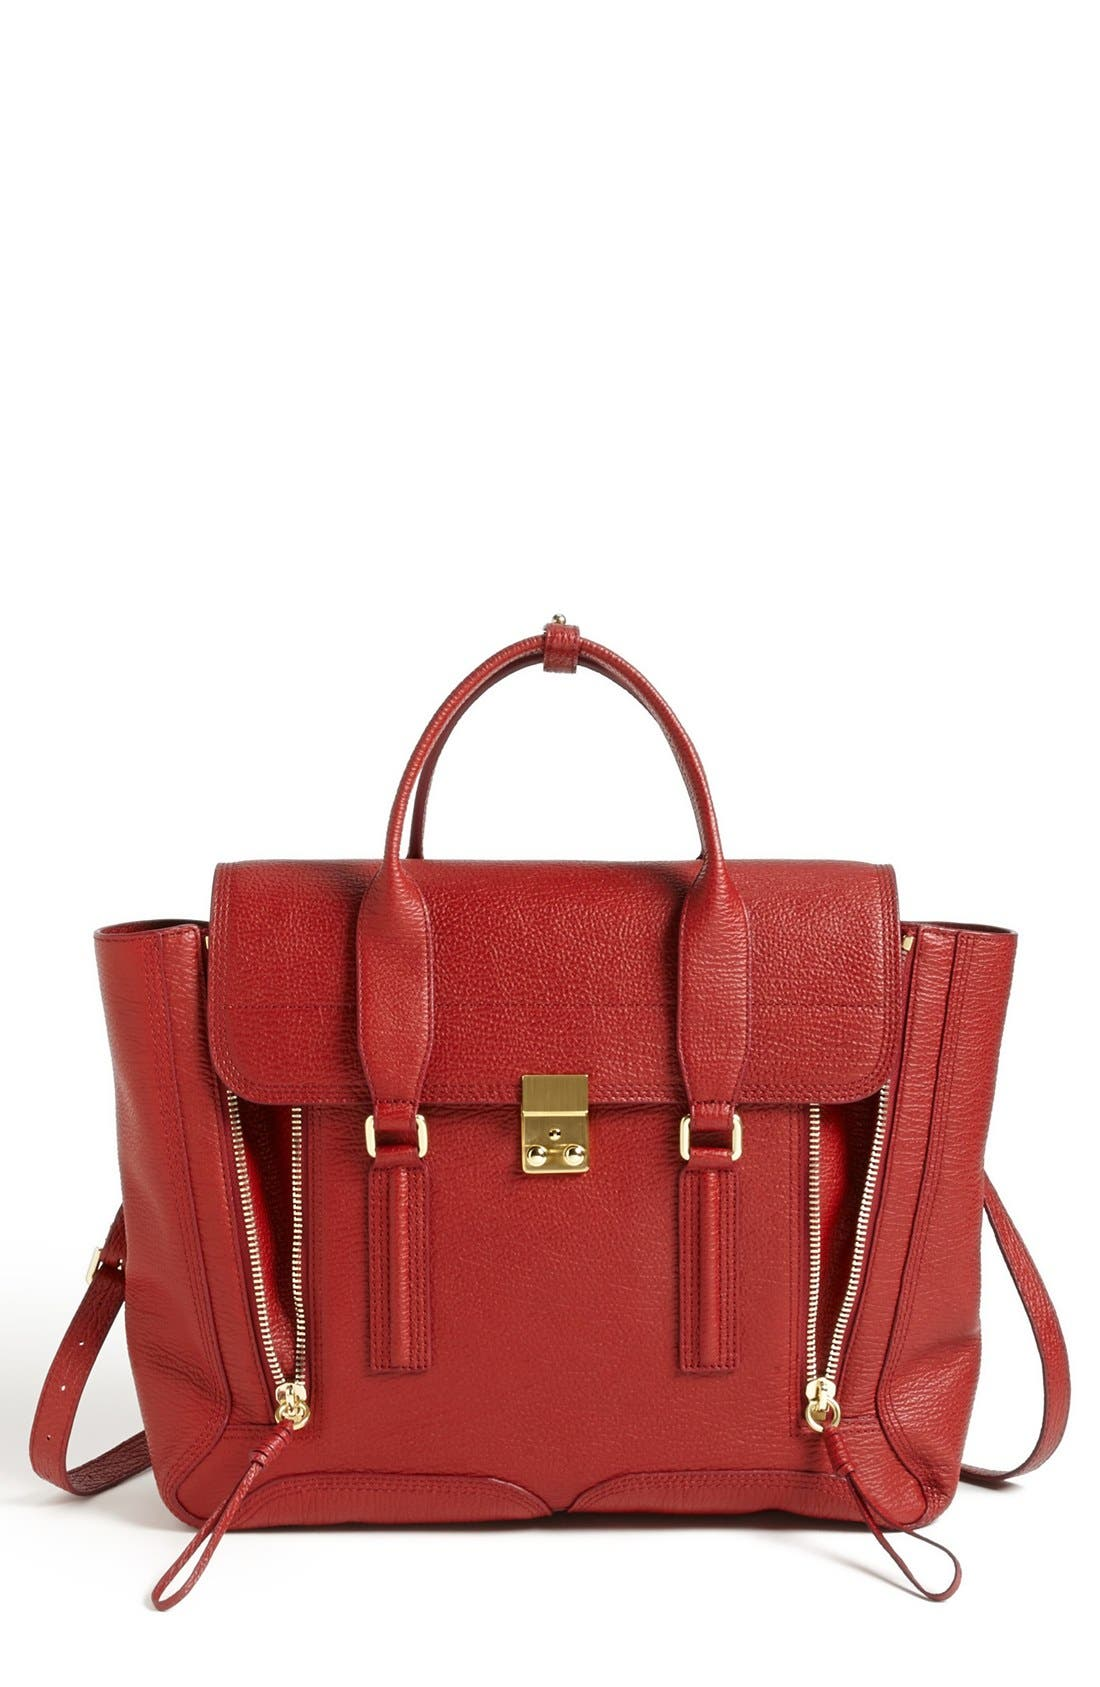 Alternate Image 1 Selected - 3.1 Phillip Lim 'Pashli' Shark Embossed Leather Satchel